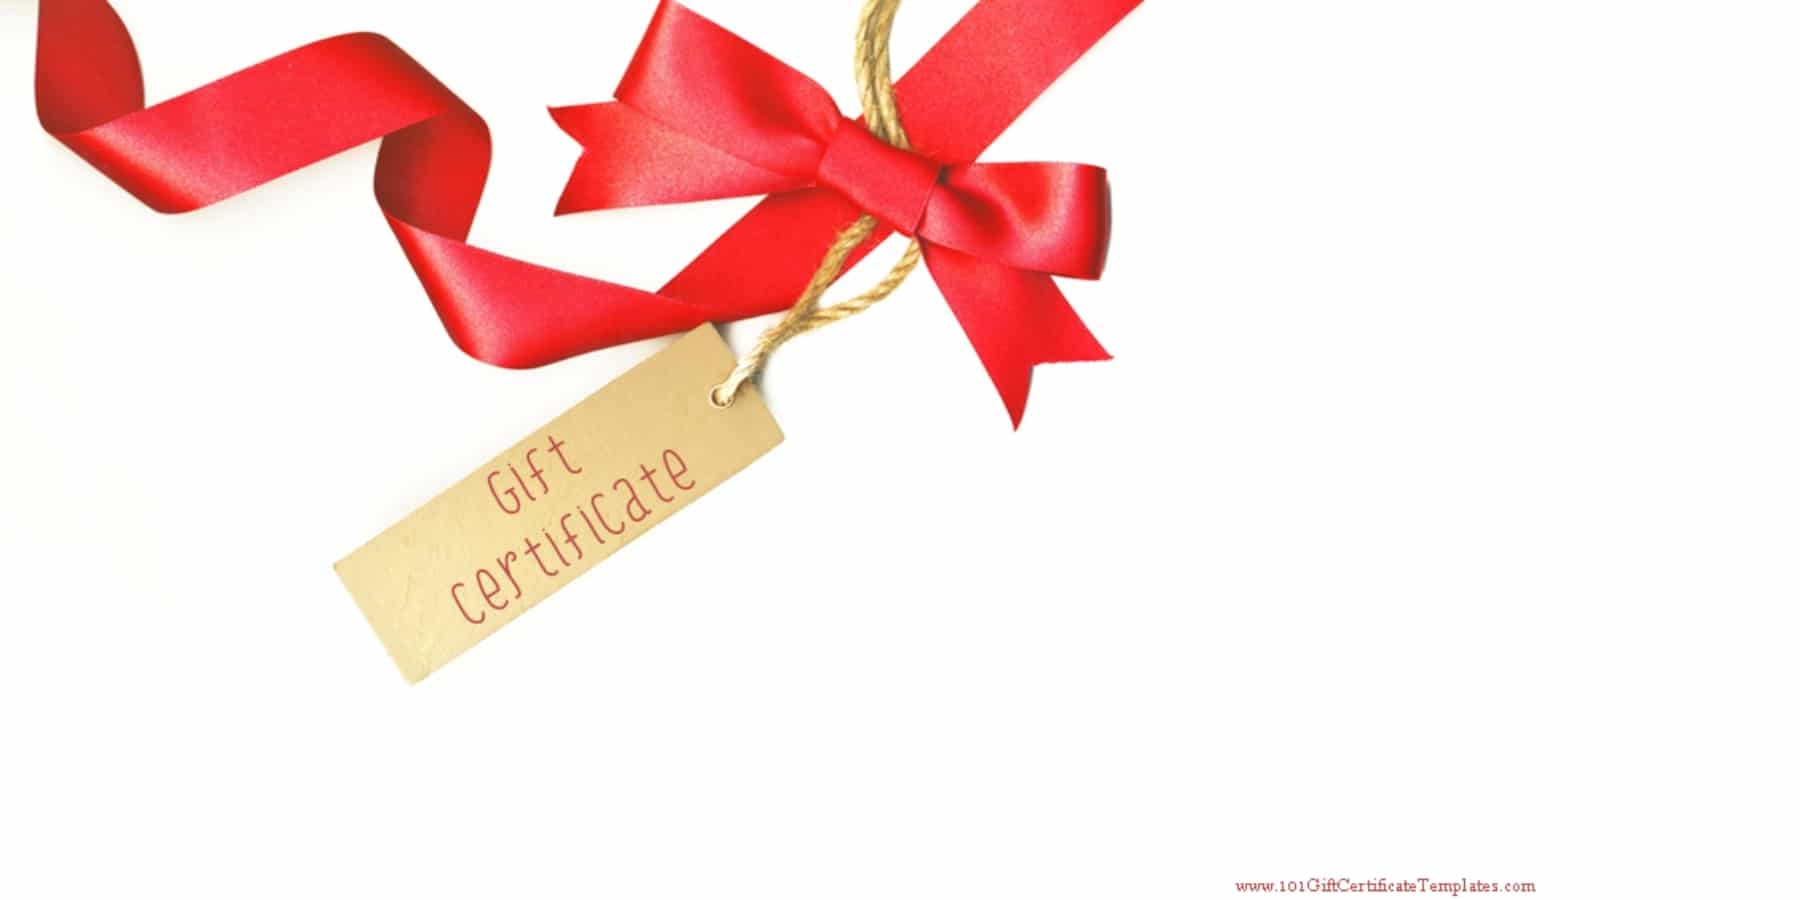 Printable gift certificate templates gift card which can be customized in any way with our gift card maker yelopaper Gallery